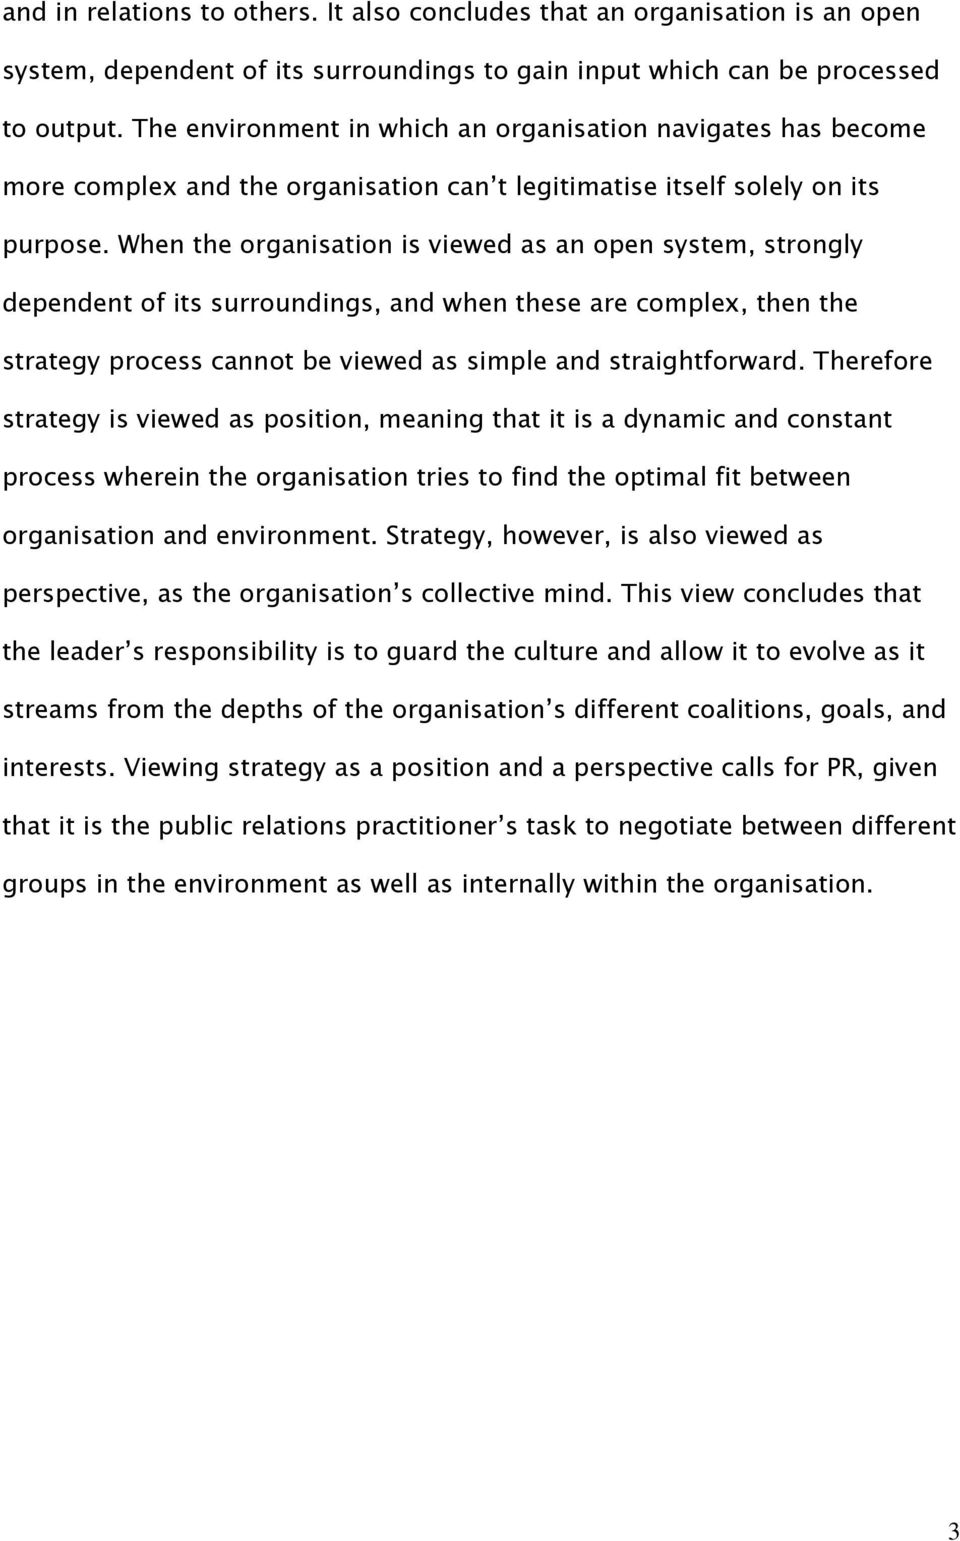 When the organisation is viewed as an open system, strongly dependent of its surroundings, and when these are complex, then the strategy process cannot be viewed as simple and straightforward.